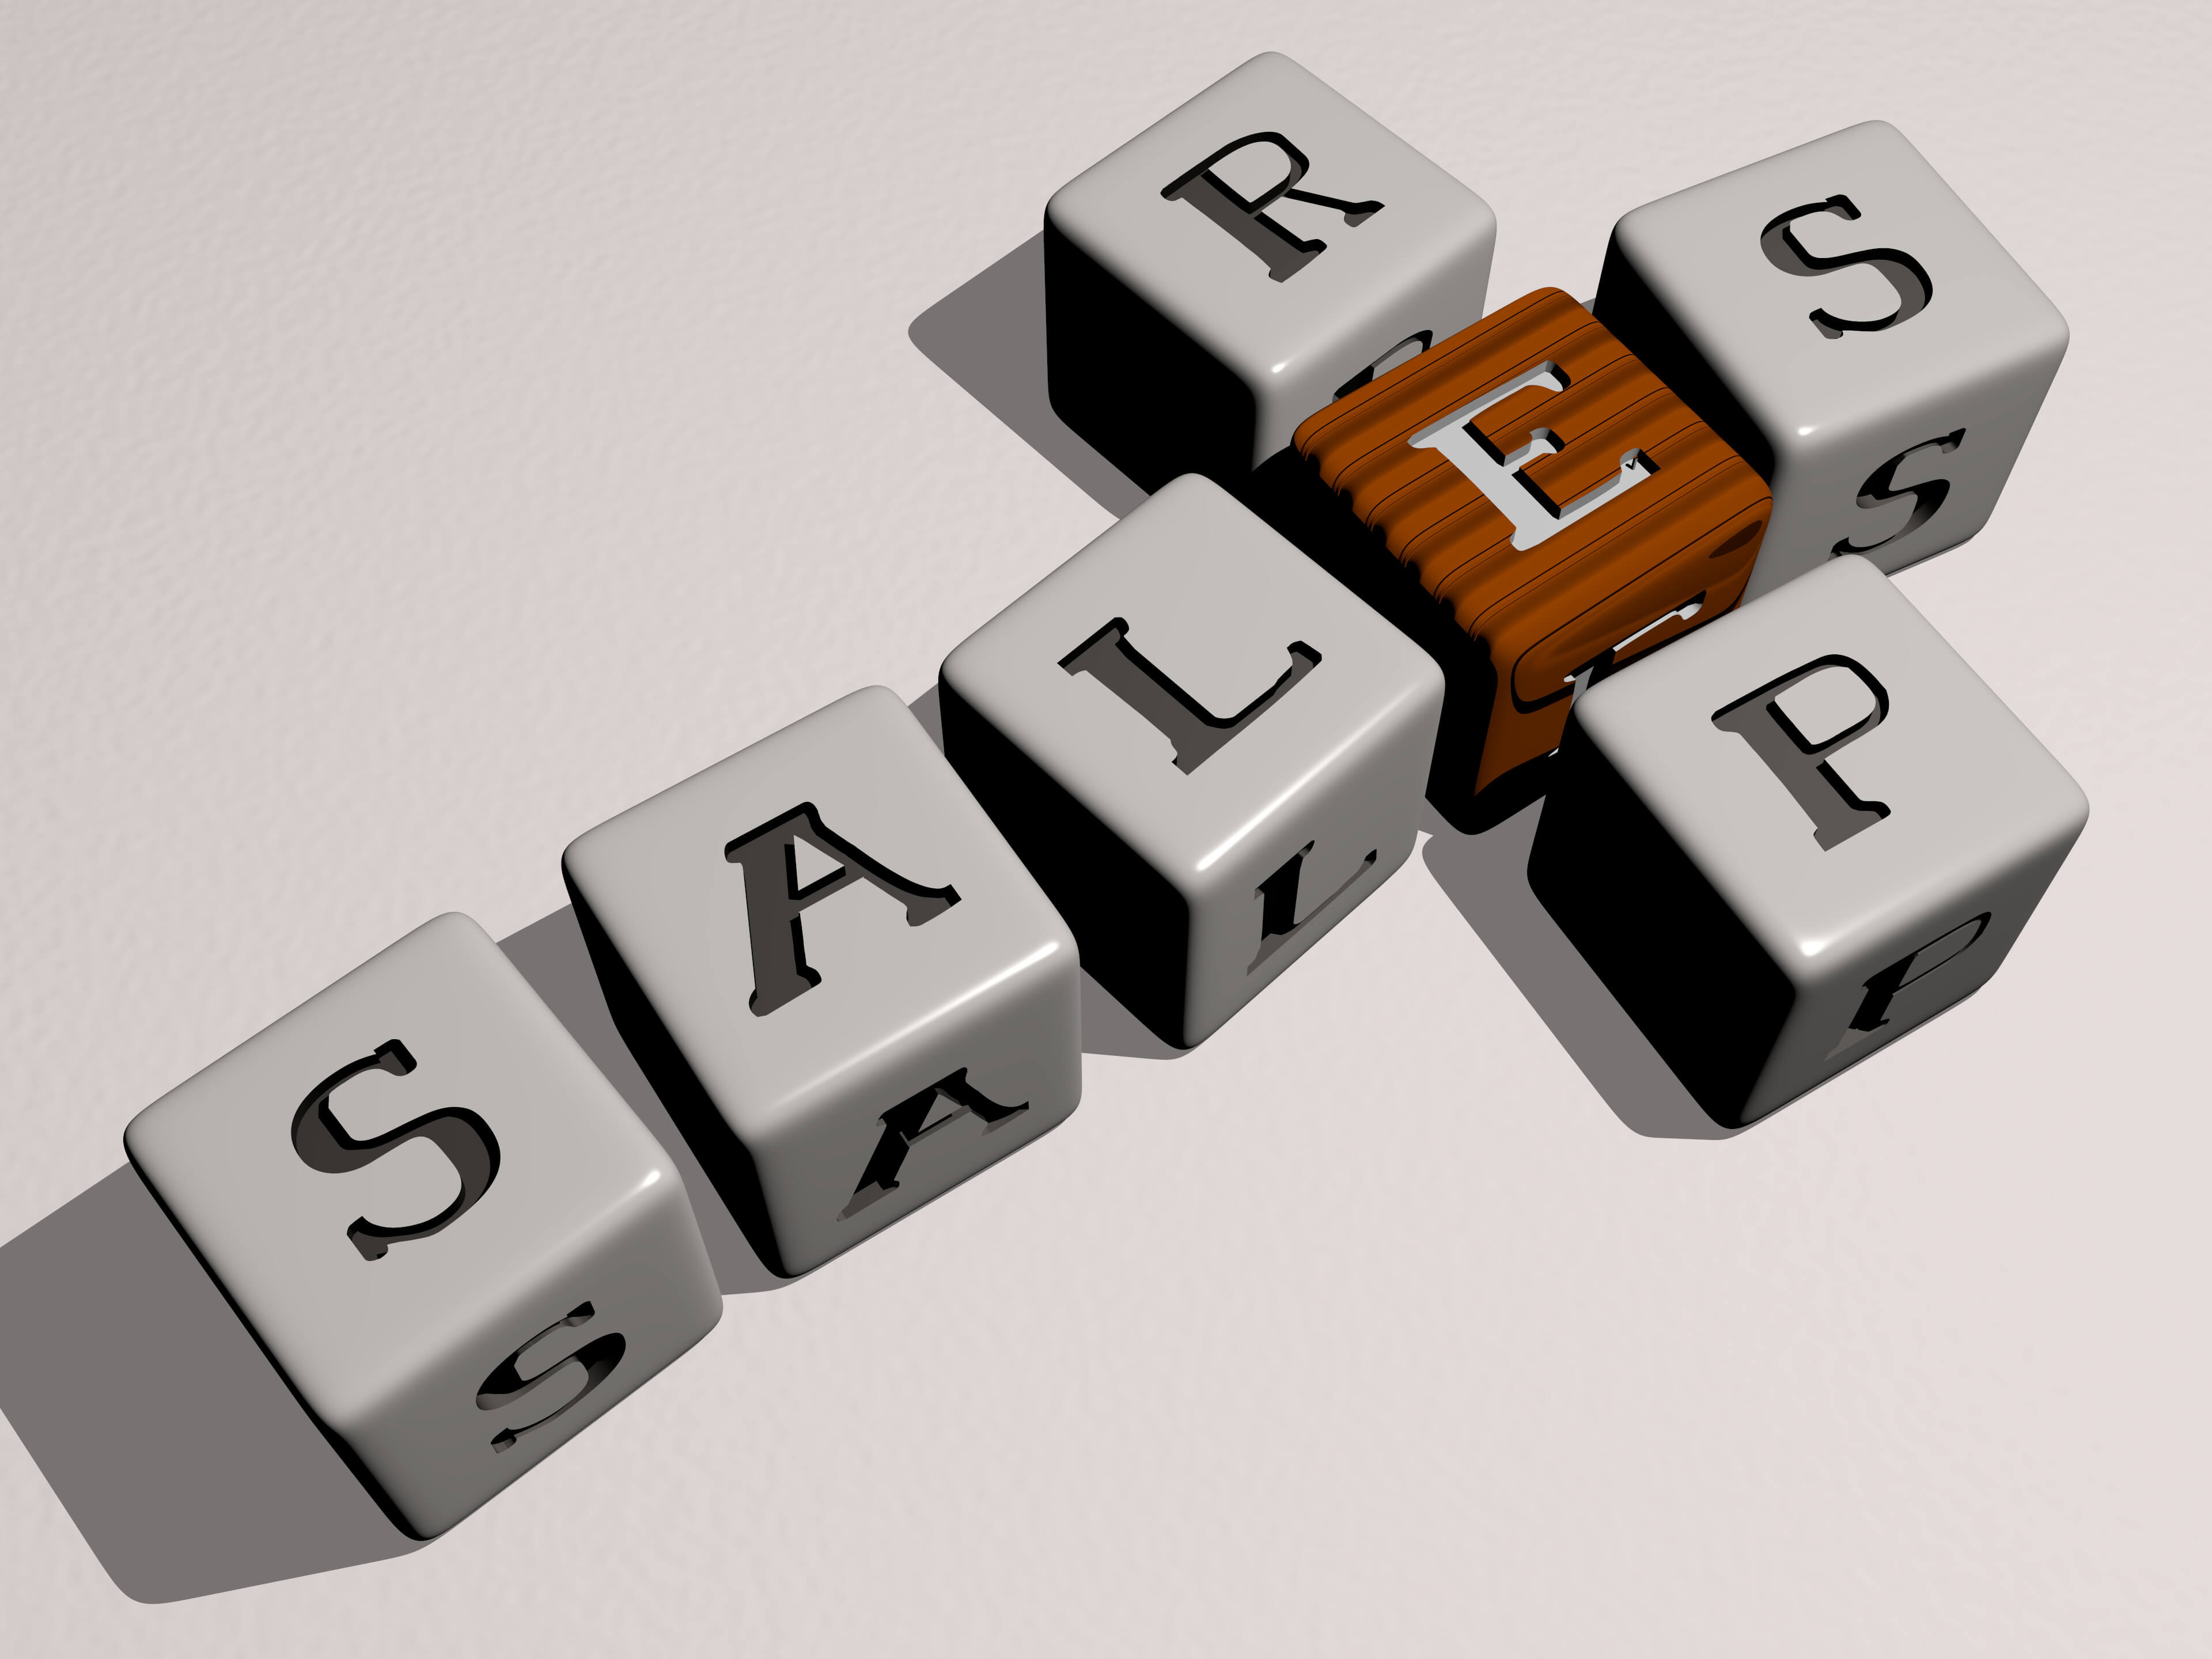 Salesreps written out with blocks.